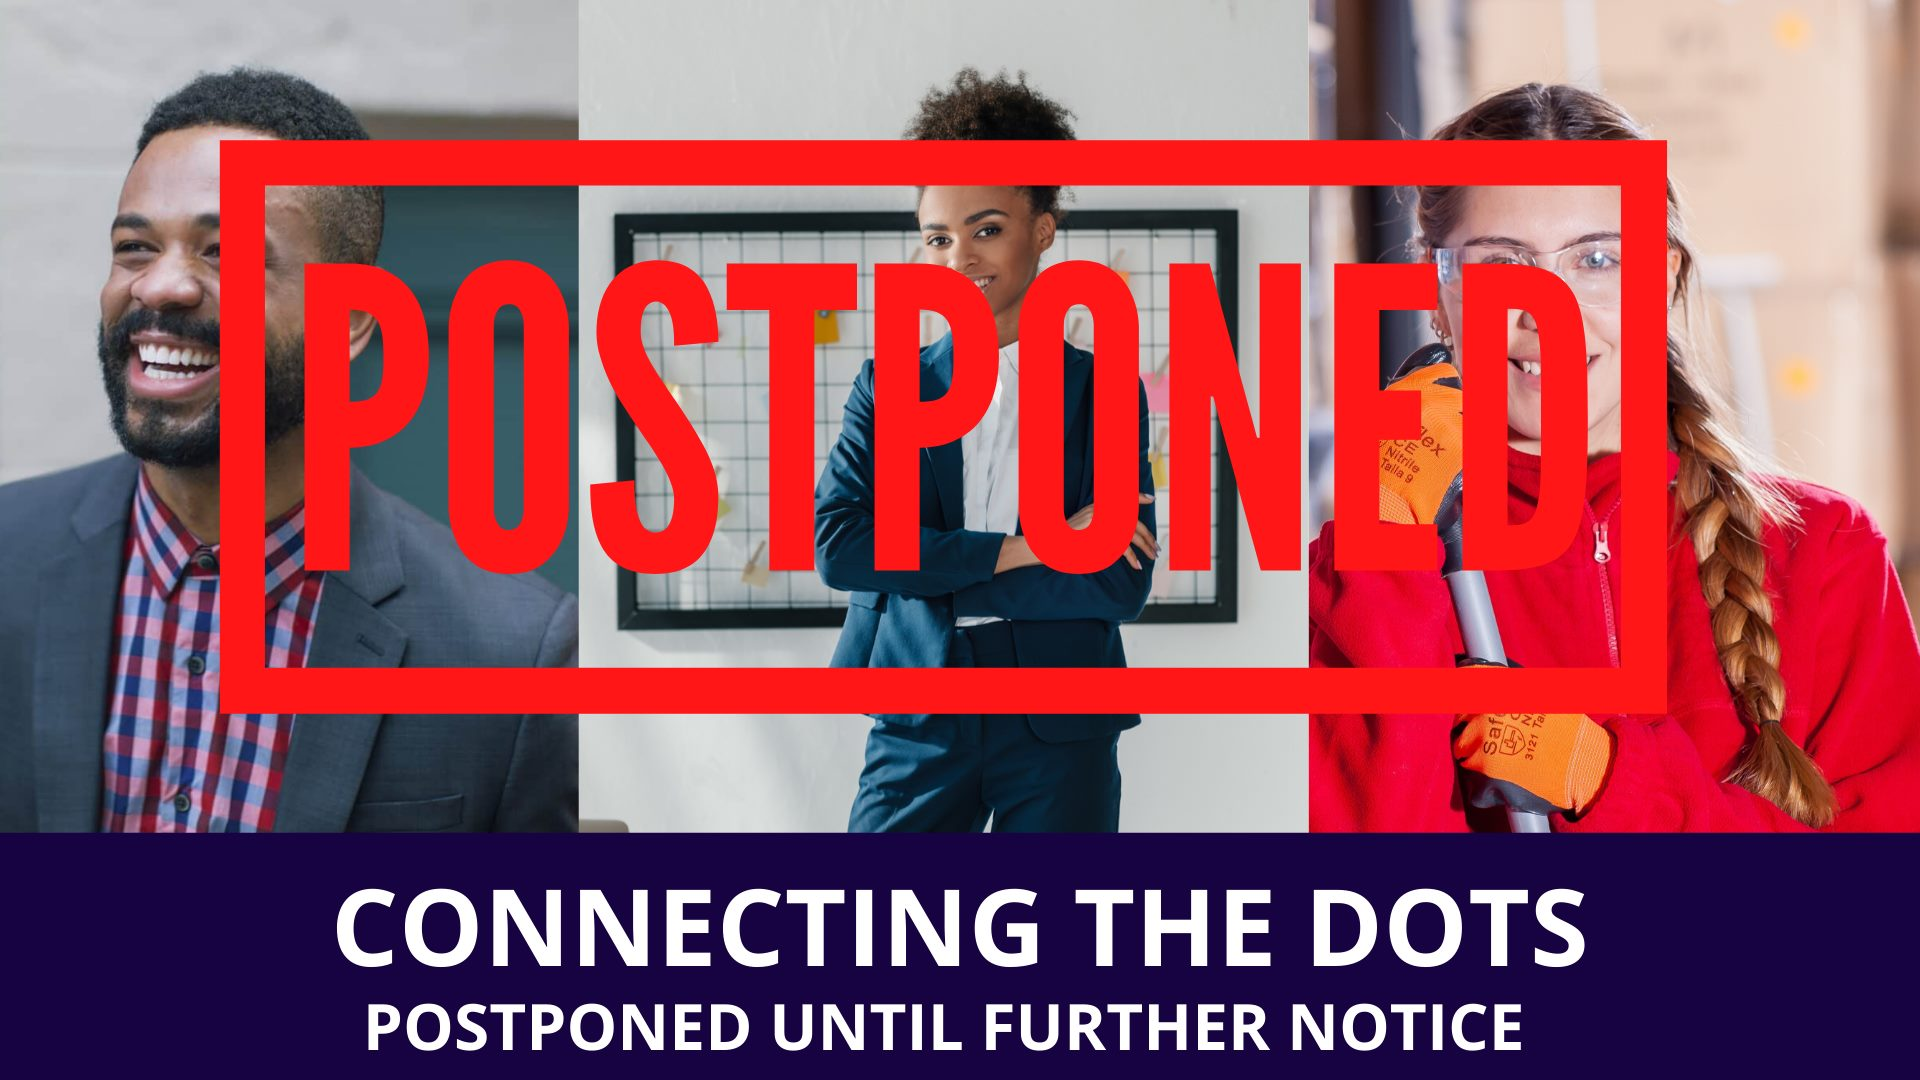 Connect the Dots Postponed!